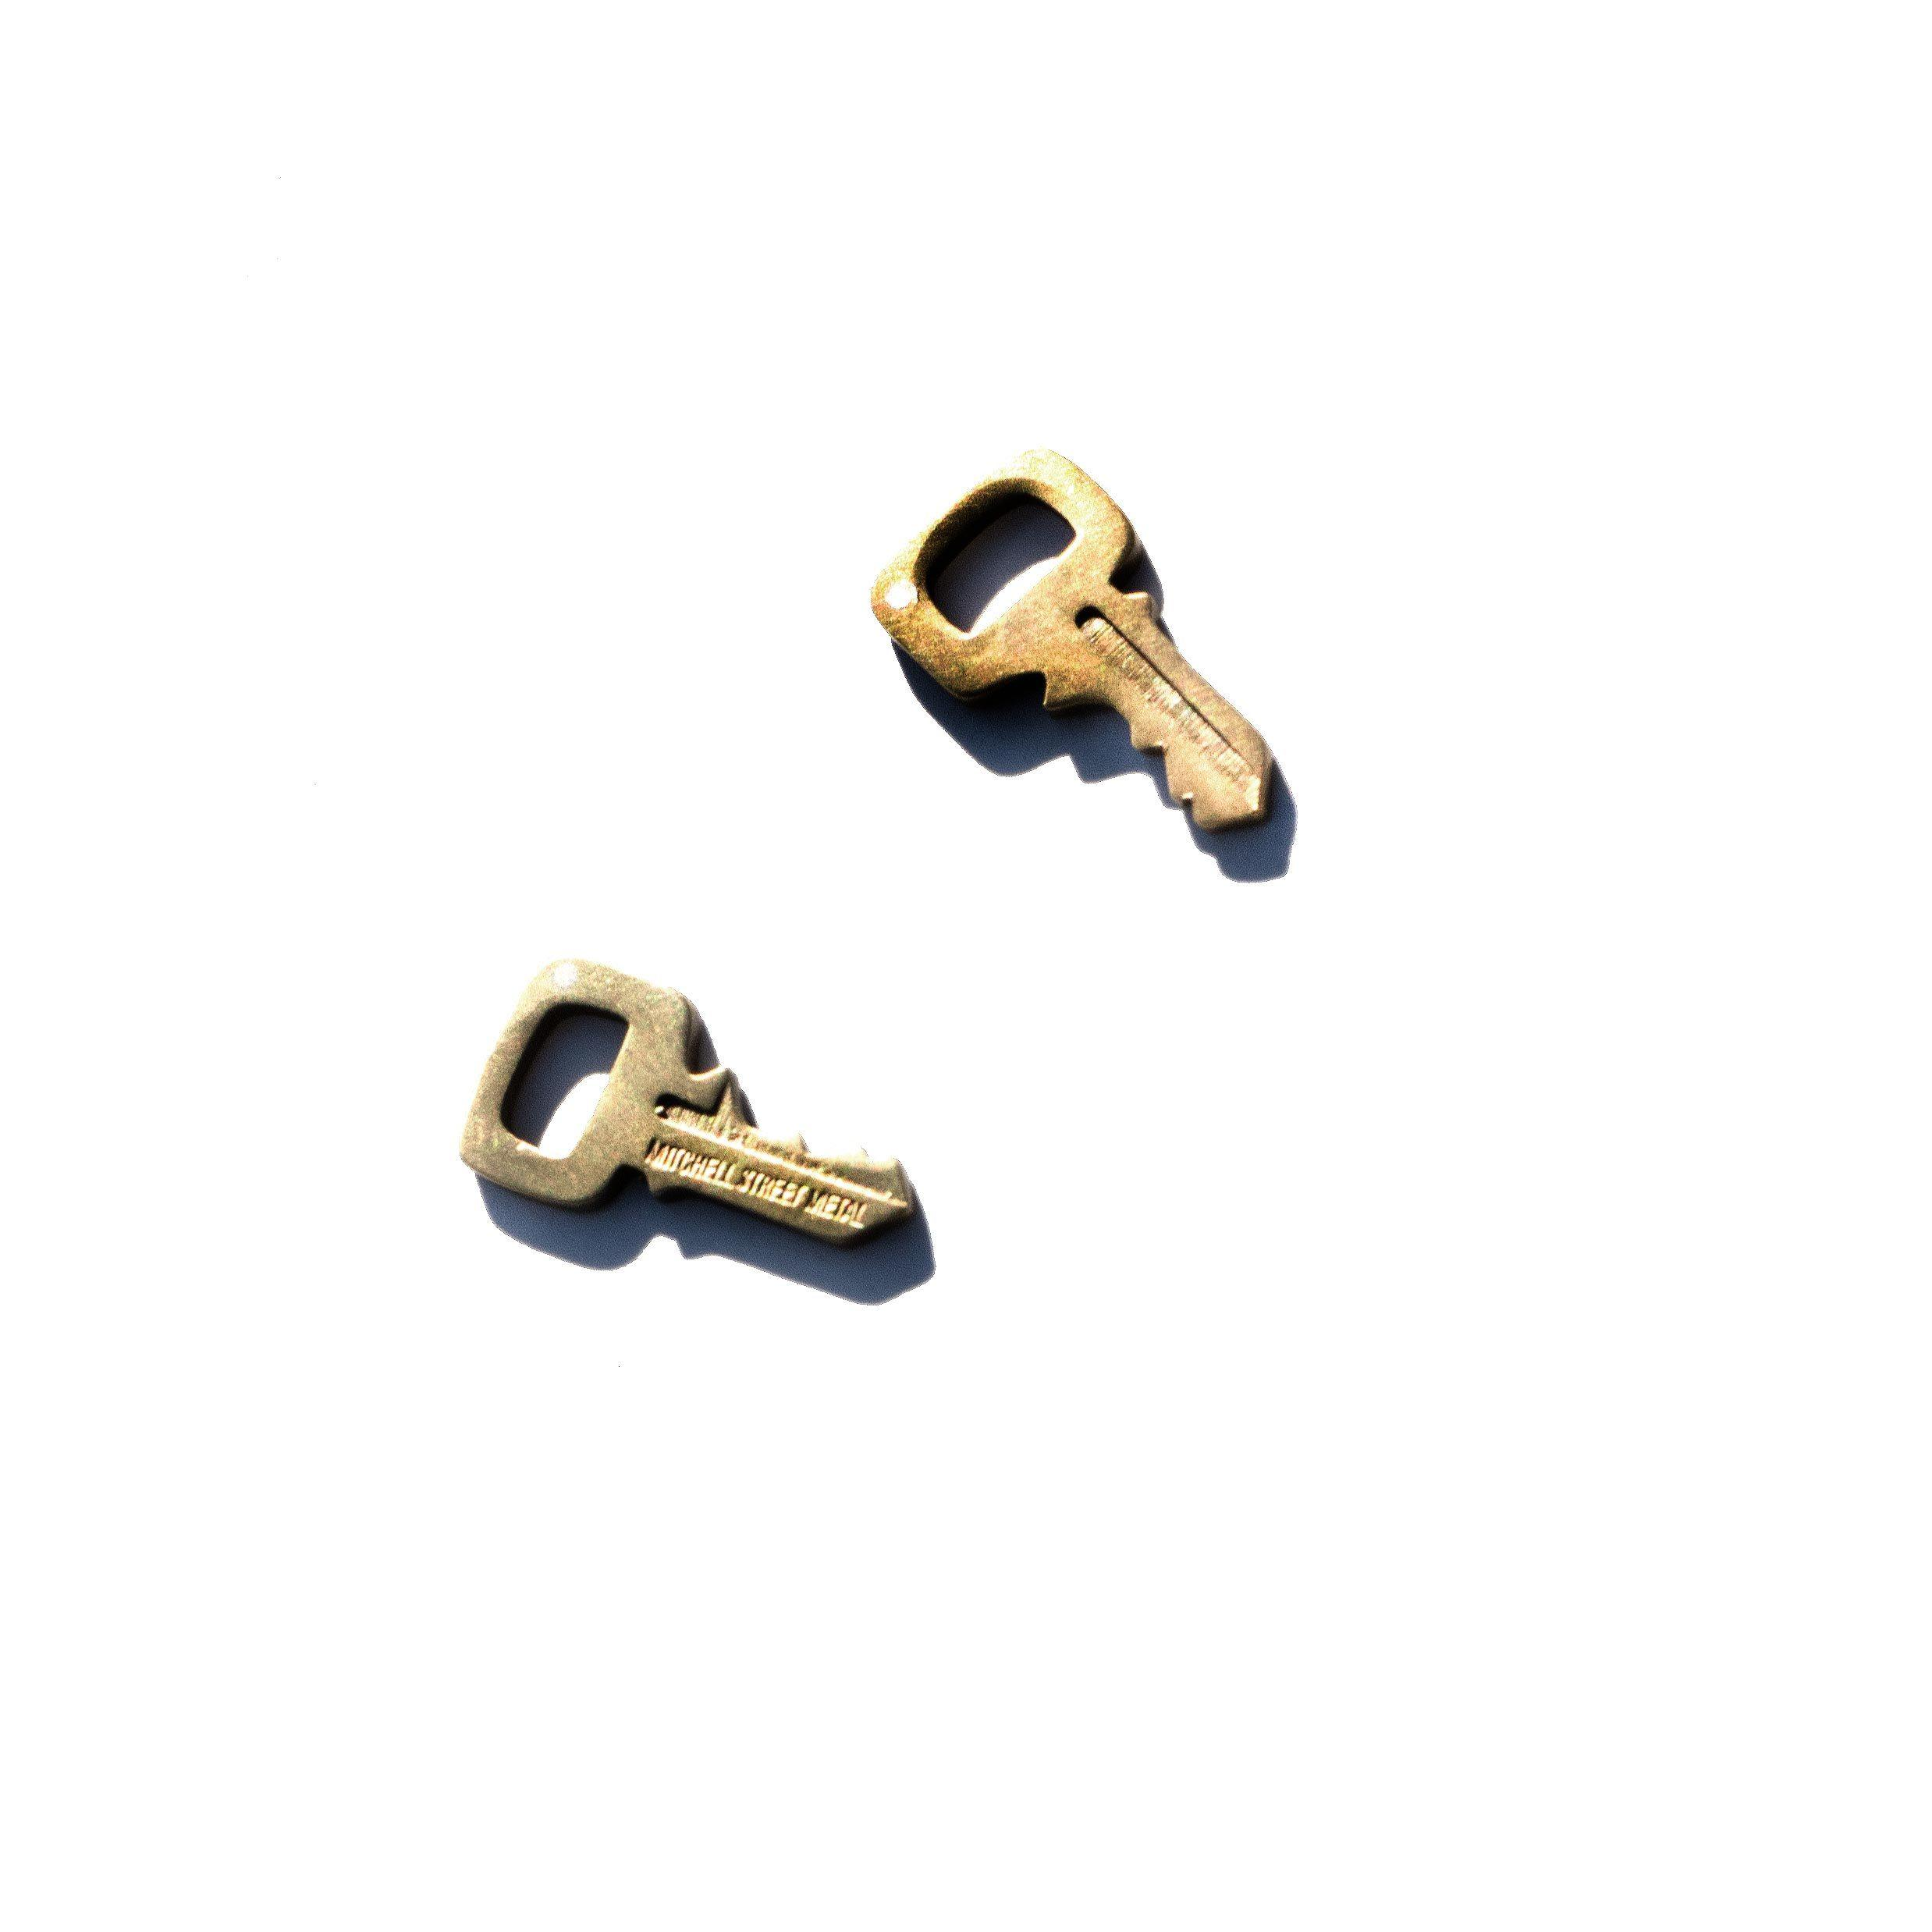 Brass key studs on white background